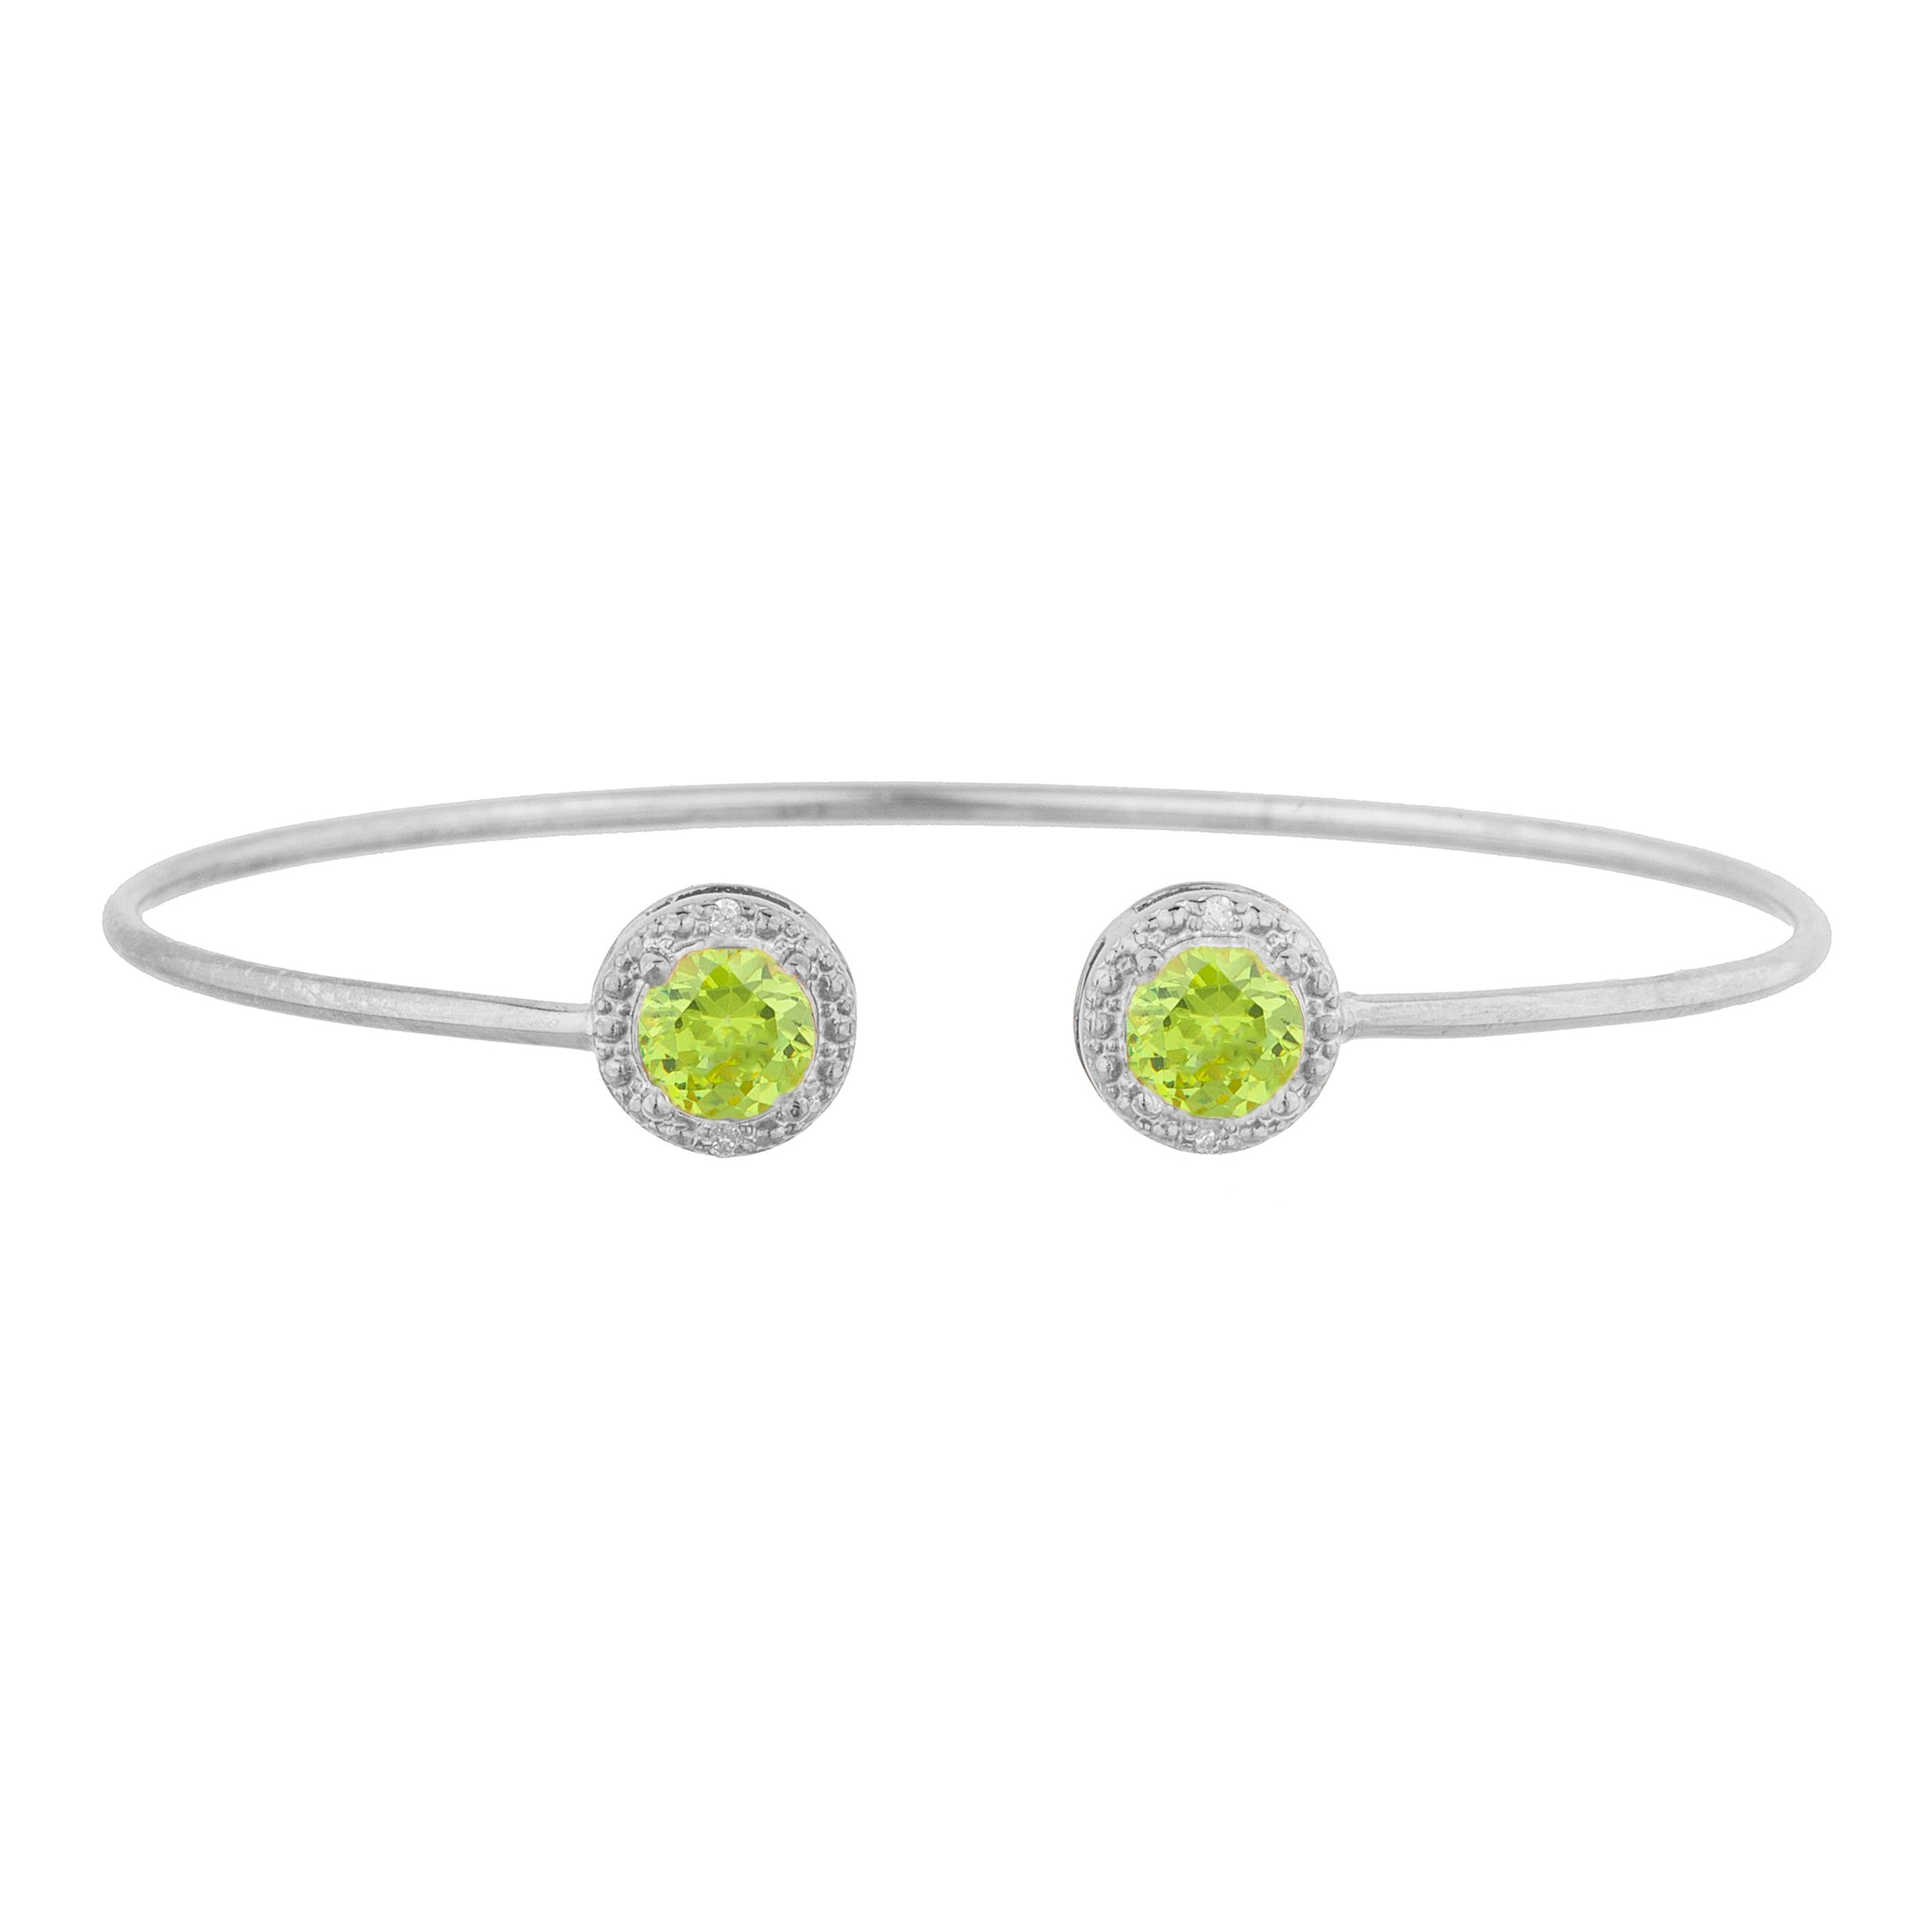 2 Ct Peridot & Diamond Round Bangle Bracelet .925 Sterling Silver